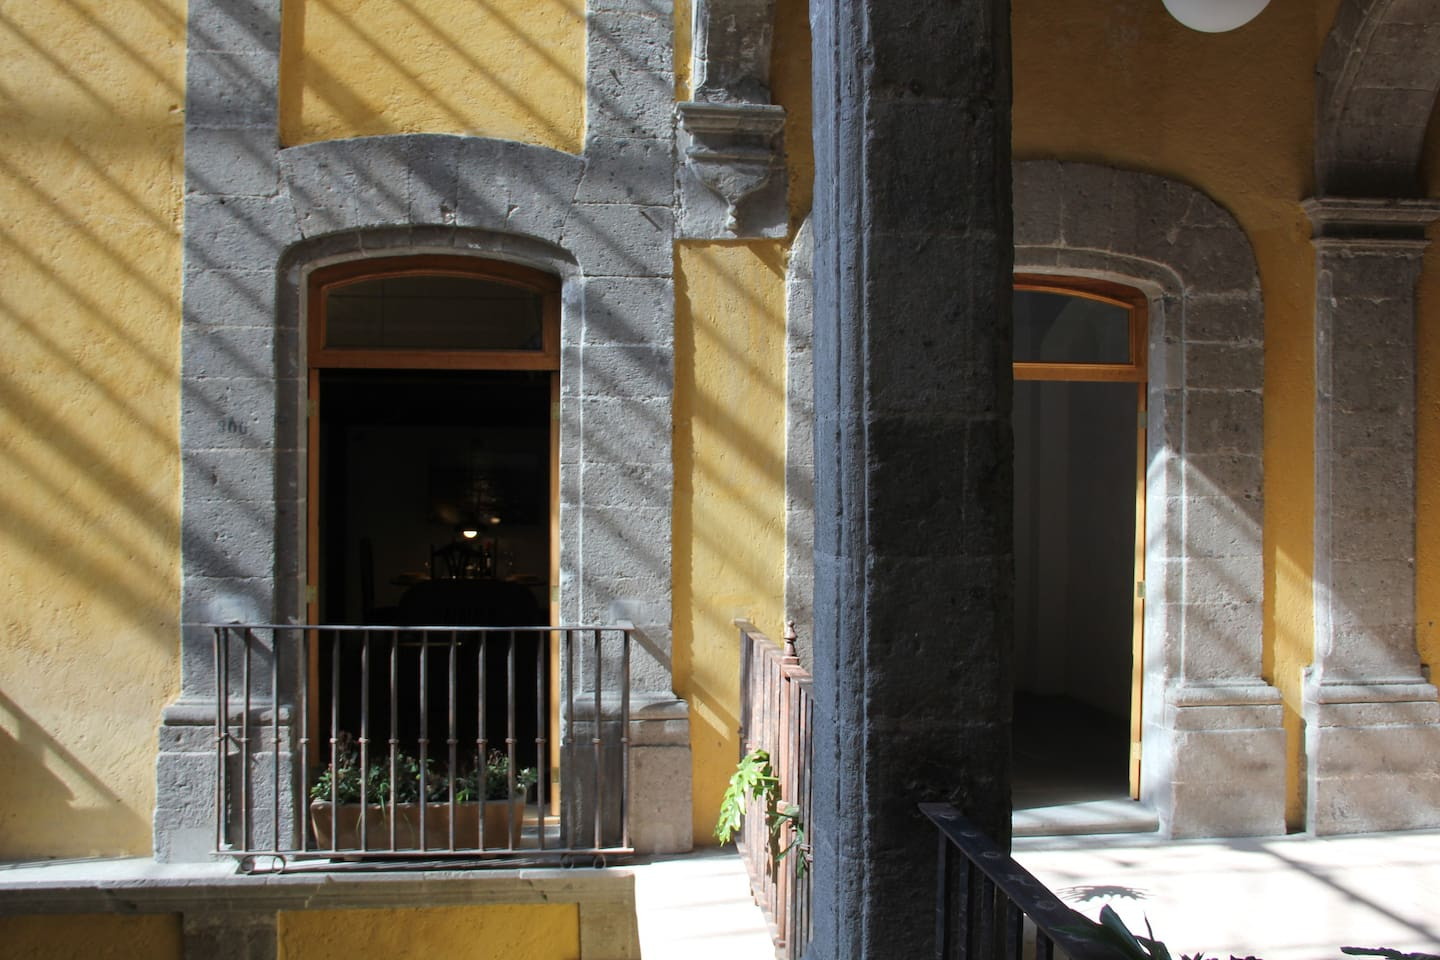 On the left your balcony, on the right the entrance to the apartment